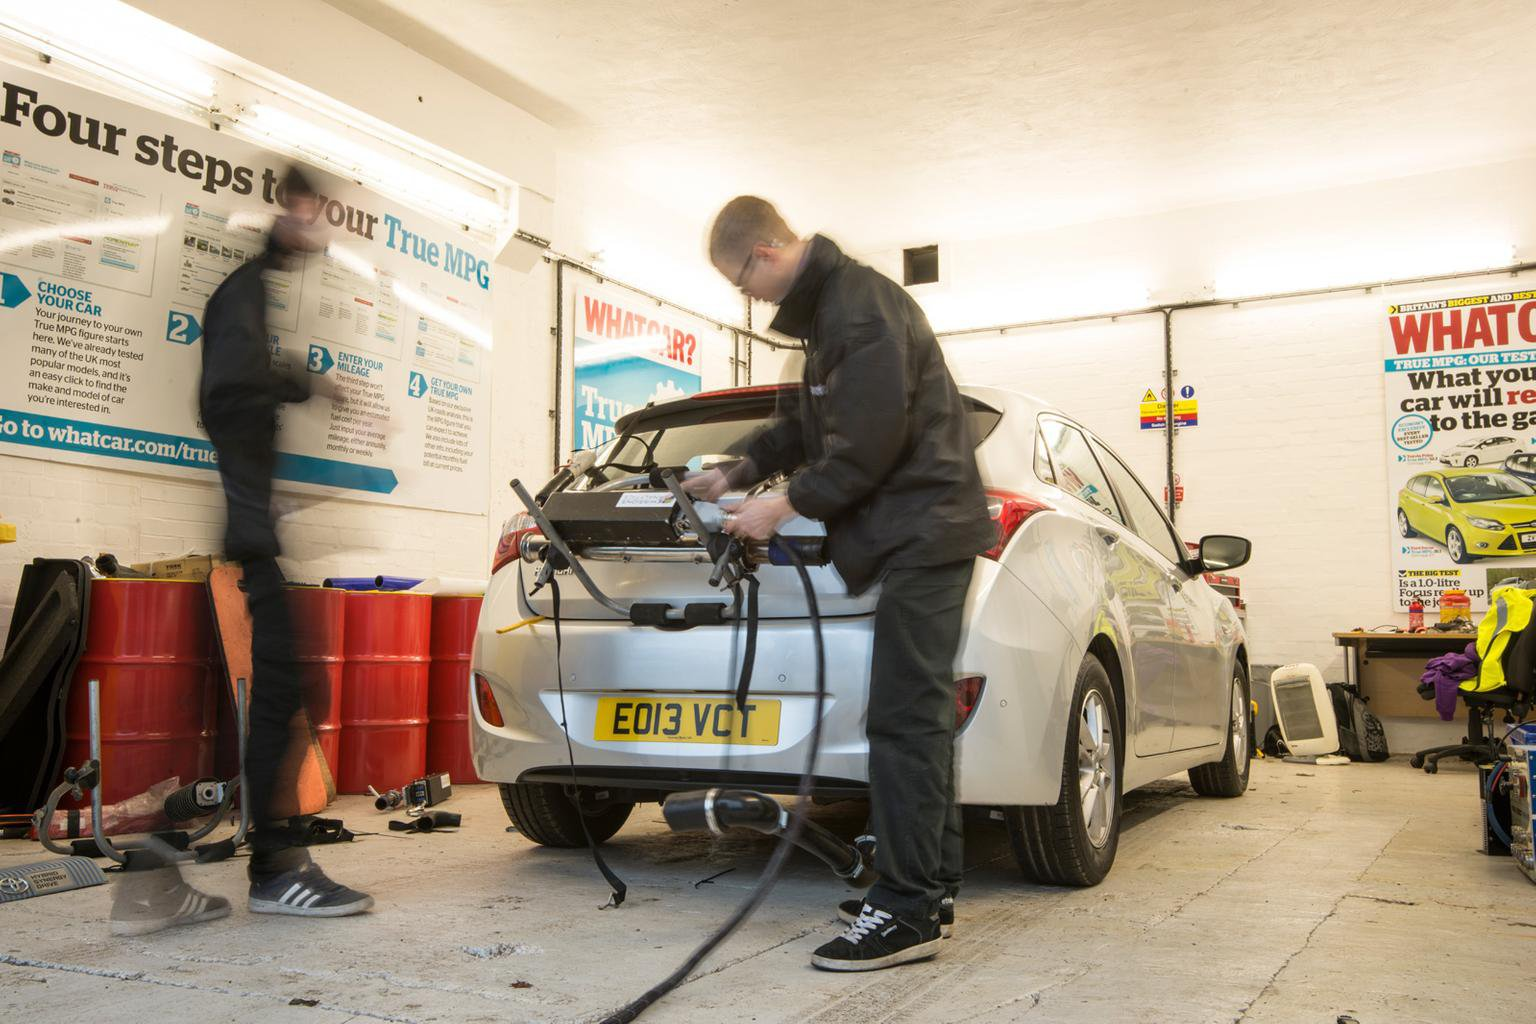 The new E10 fuel that will cost UK motorists more